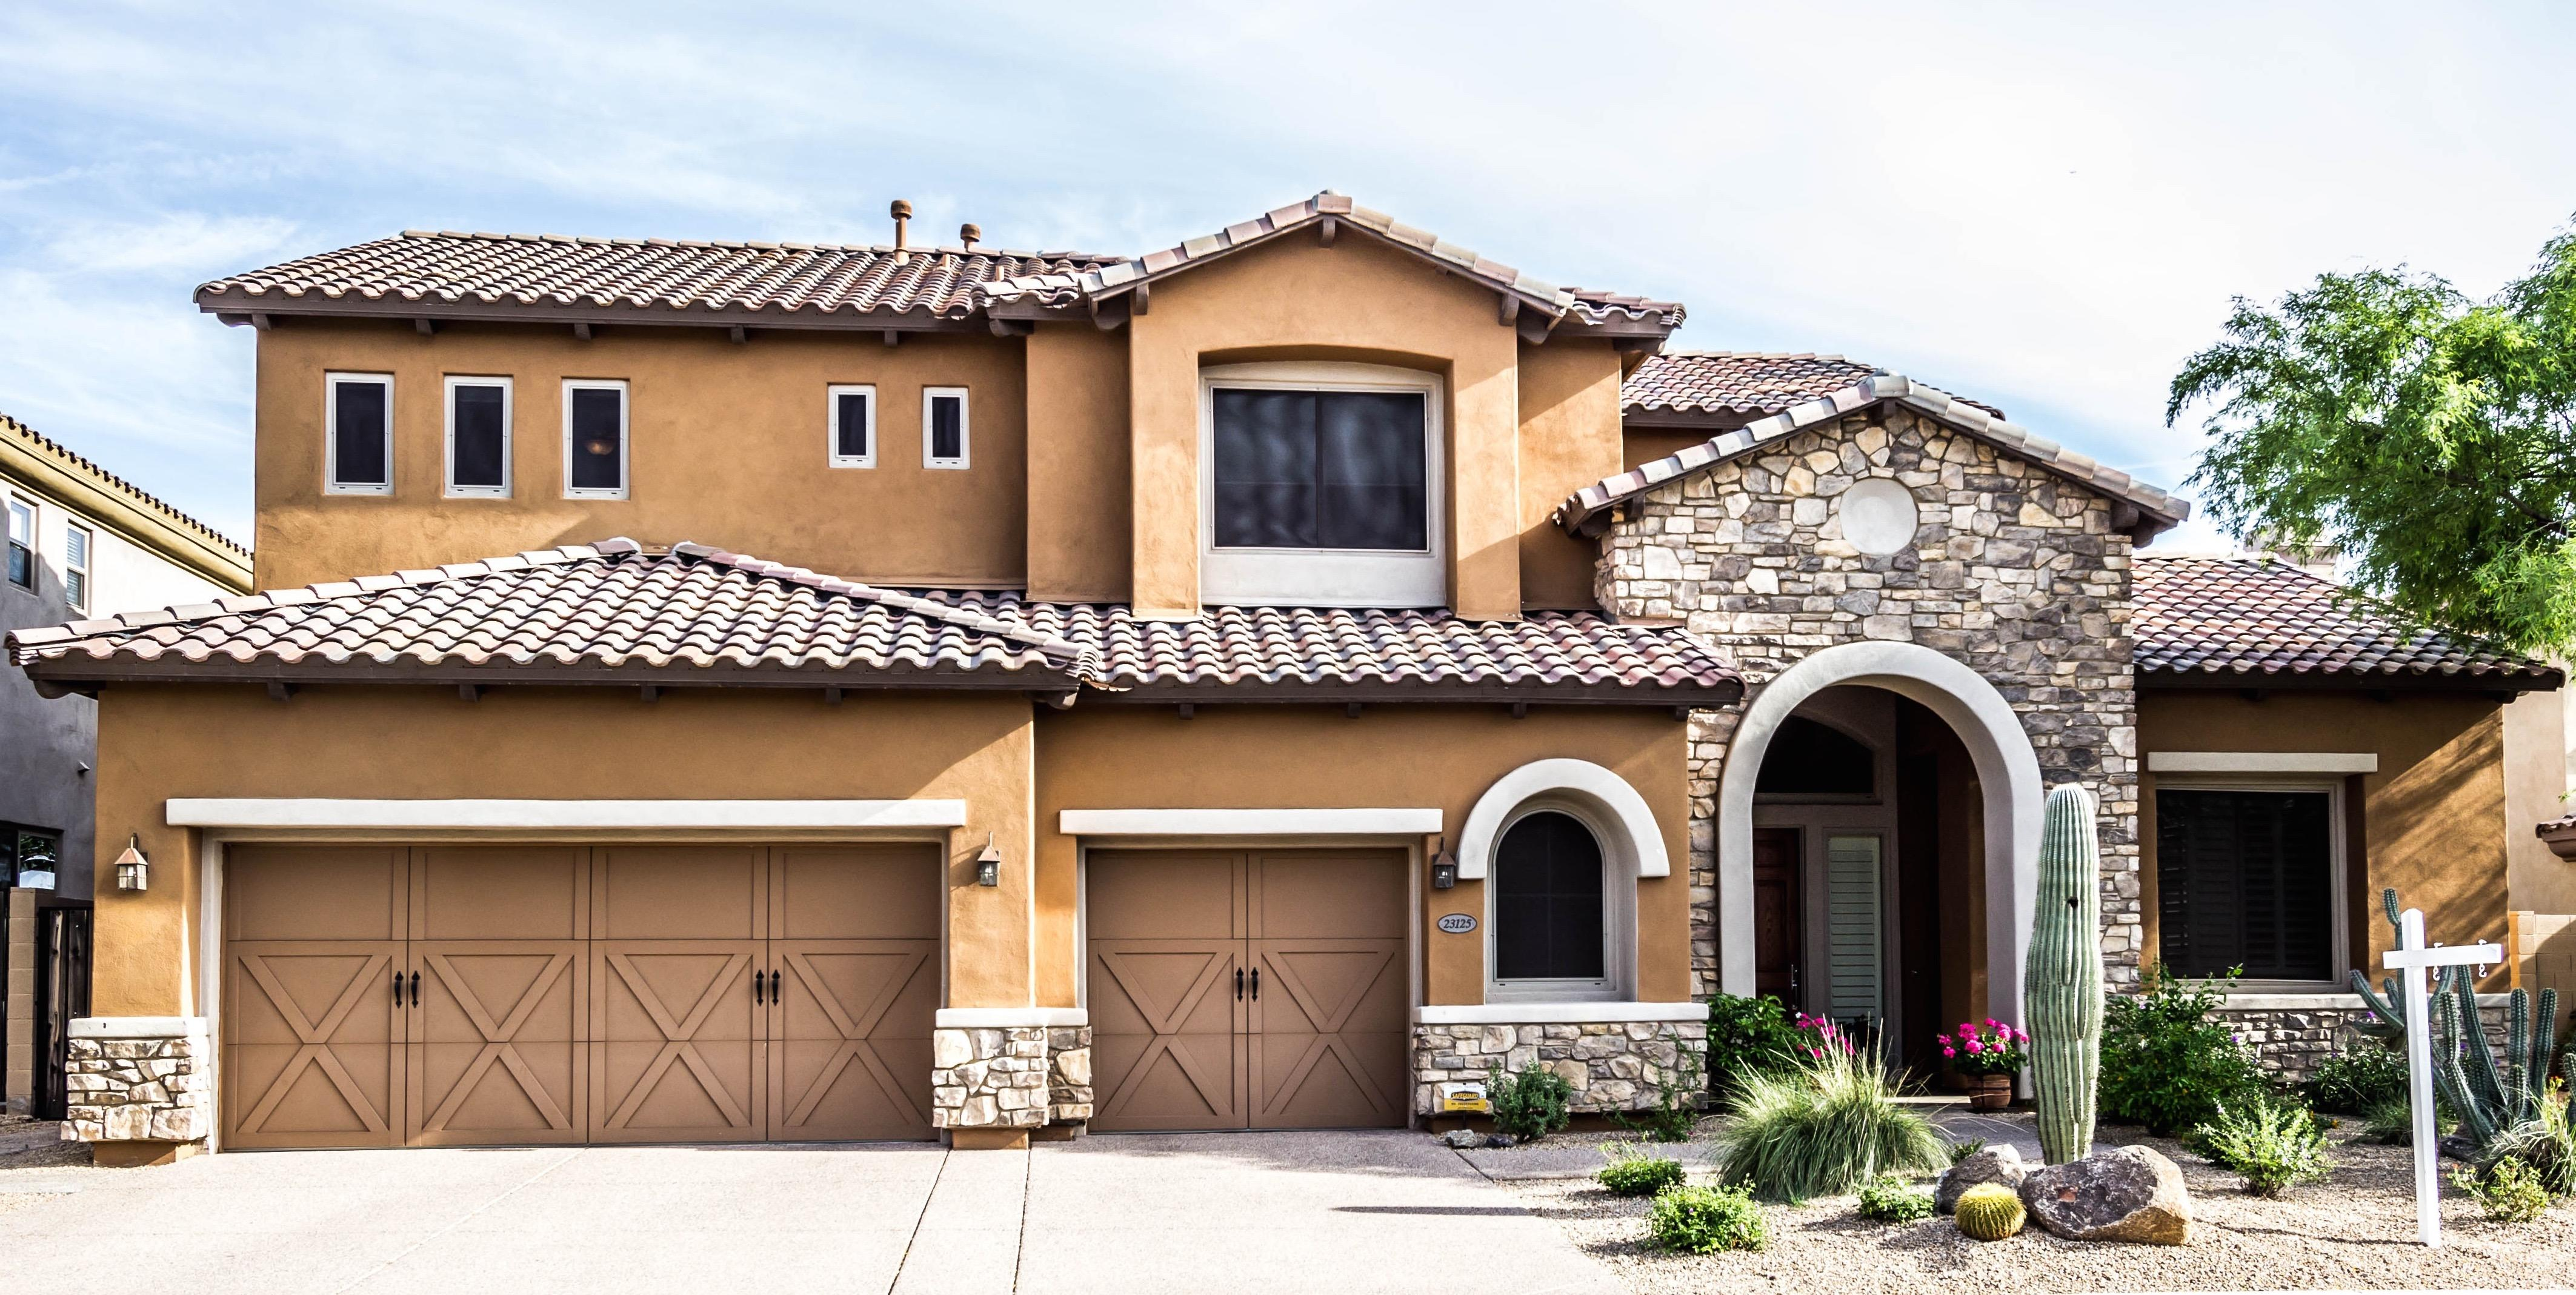 5 Bedroom Homes For Sale In Phoenix Az 28 Images 5 Bedroom Homes For Sale In Phoenix Az 28